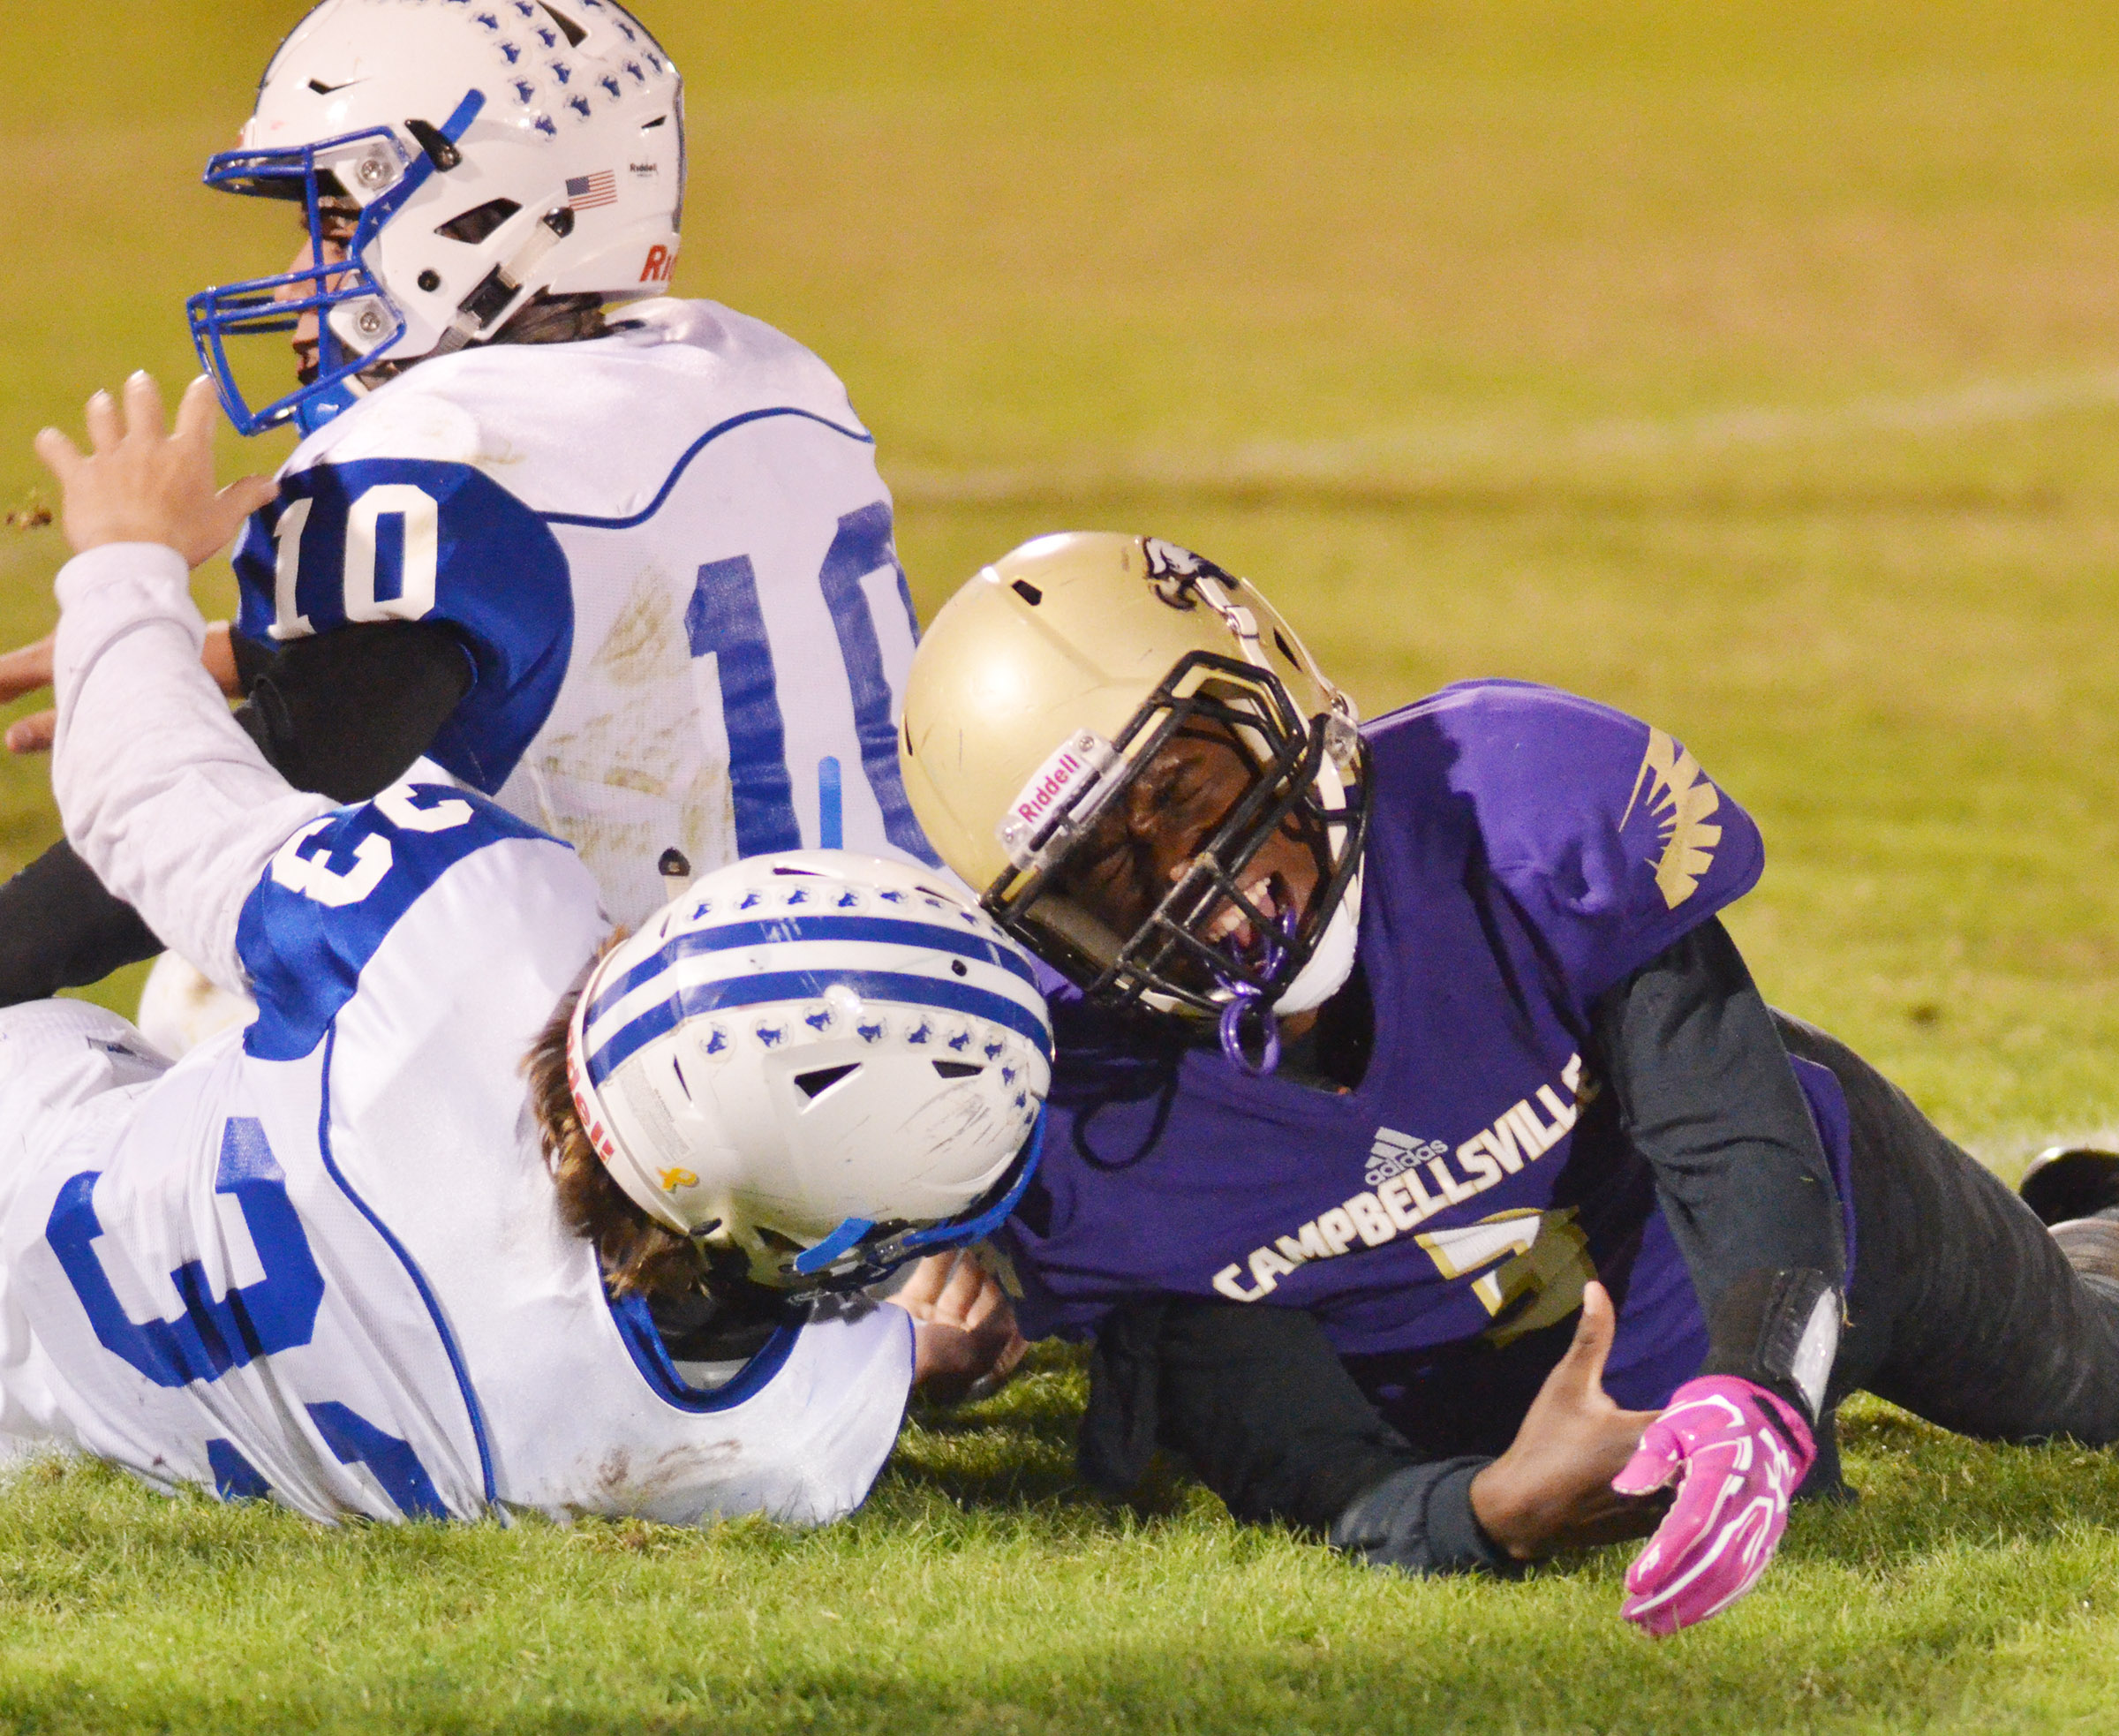 CHS sophomore Malachi Corley lands after a play.